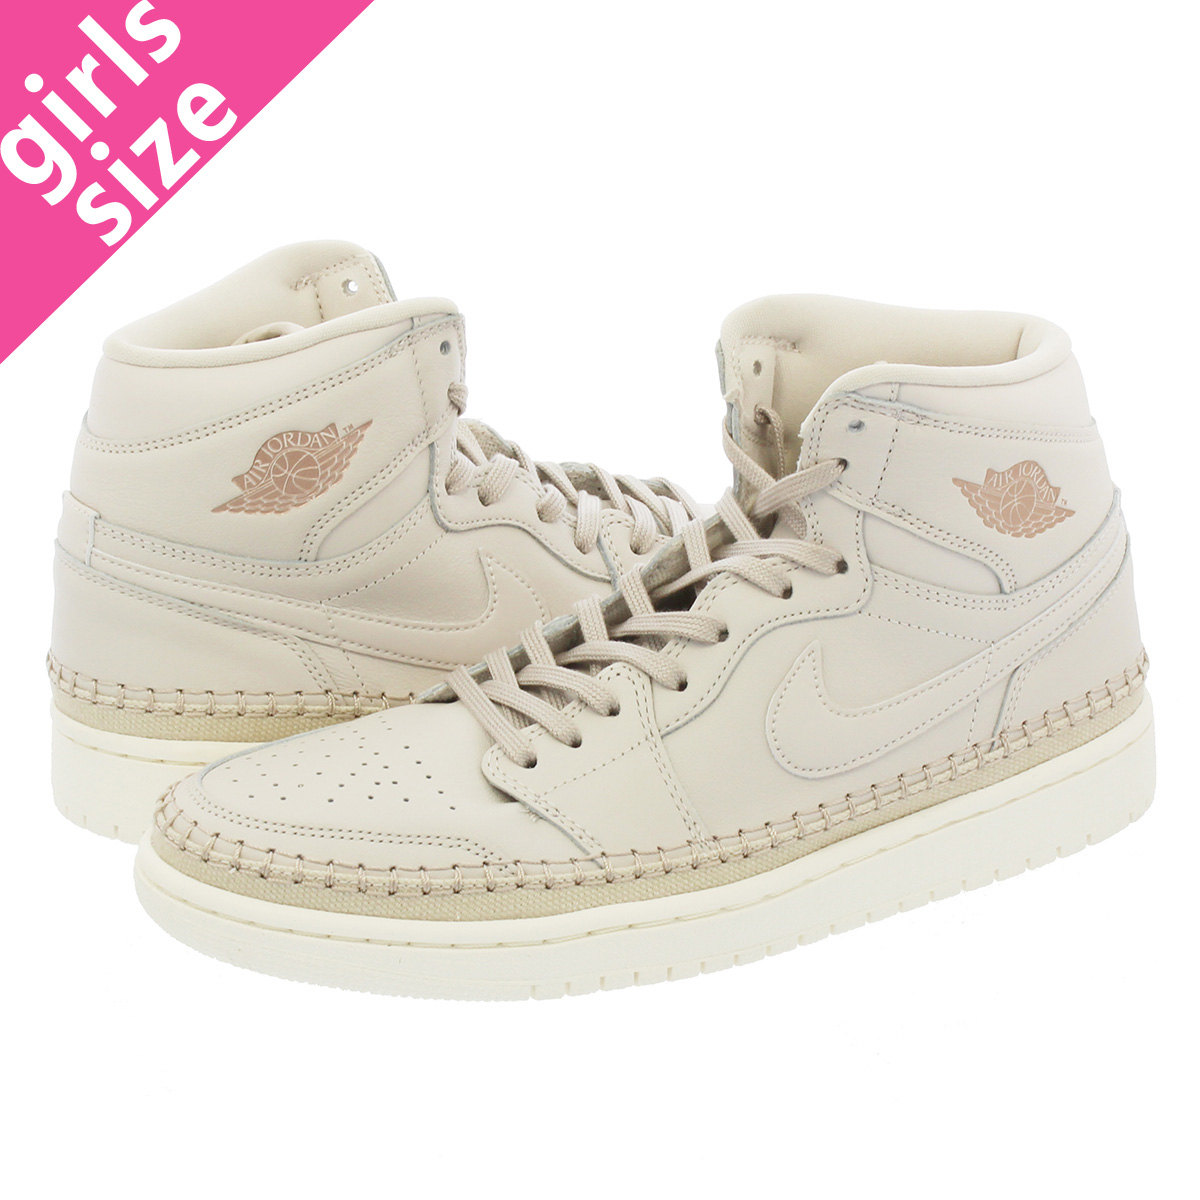 the best attitude 76a65 af121 NIKE WMNS AIR JORDAN 1 RETRO PREMIUM Nike women Air Jordan 1 nostalgic high  premium DESERT SAND SAIL METALLIC RED BRONZE ah7389-021-l